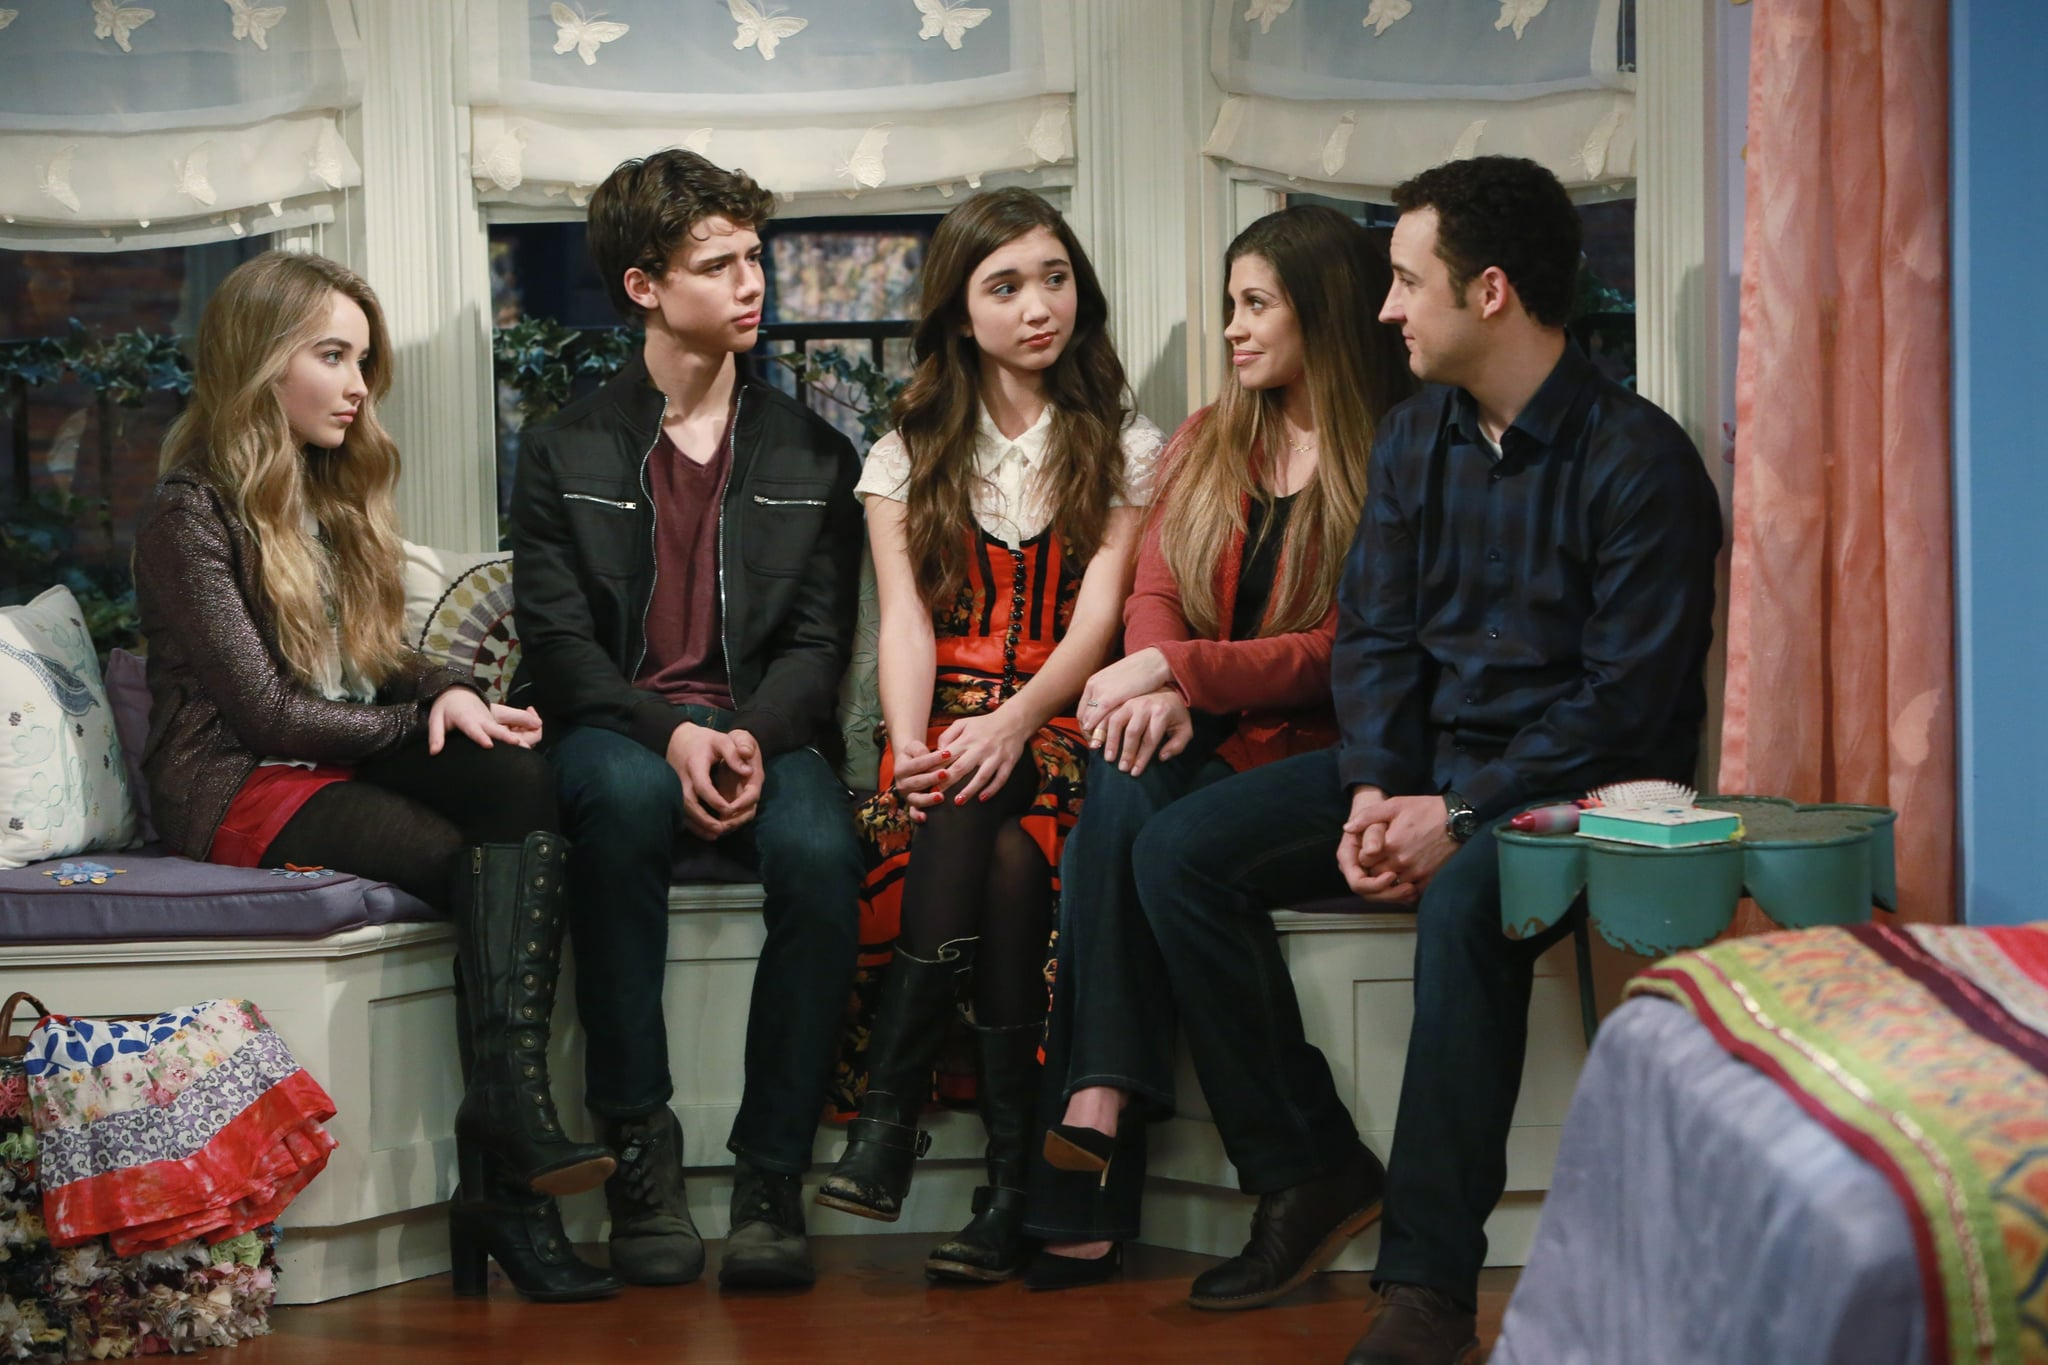 cast of girl meets world zay 'girl meets world' first look: cory and topanga pose in full cast photo.